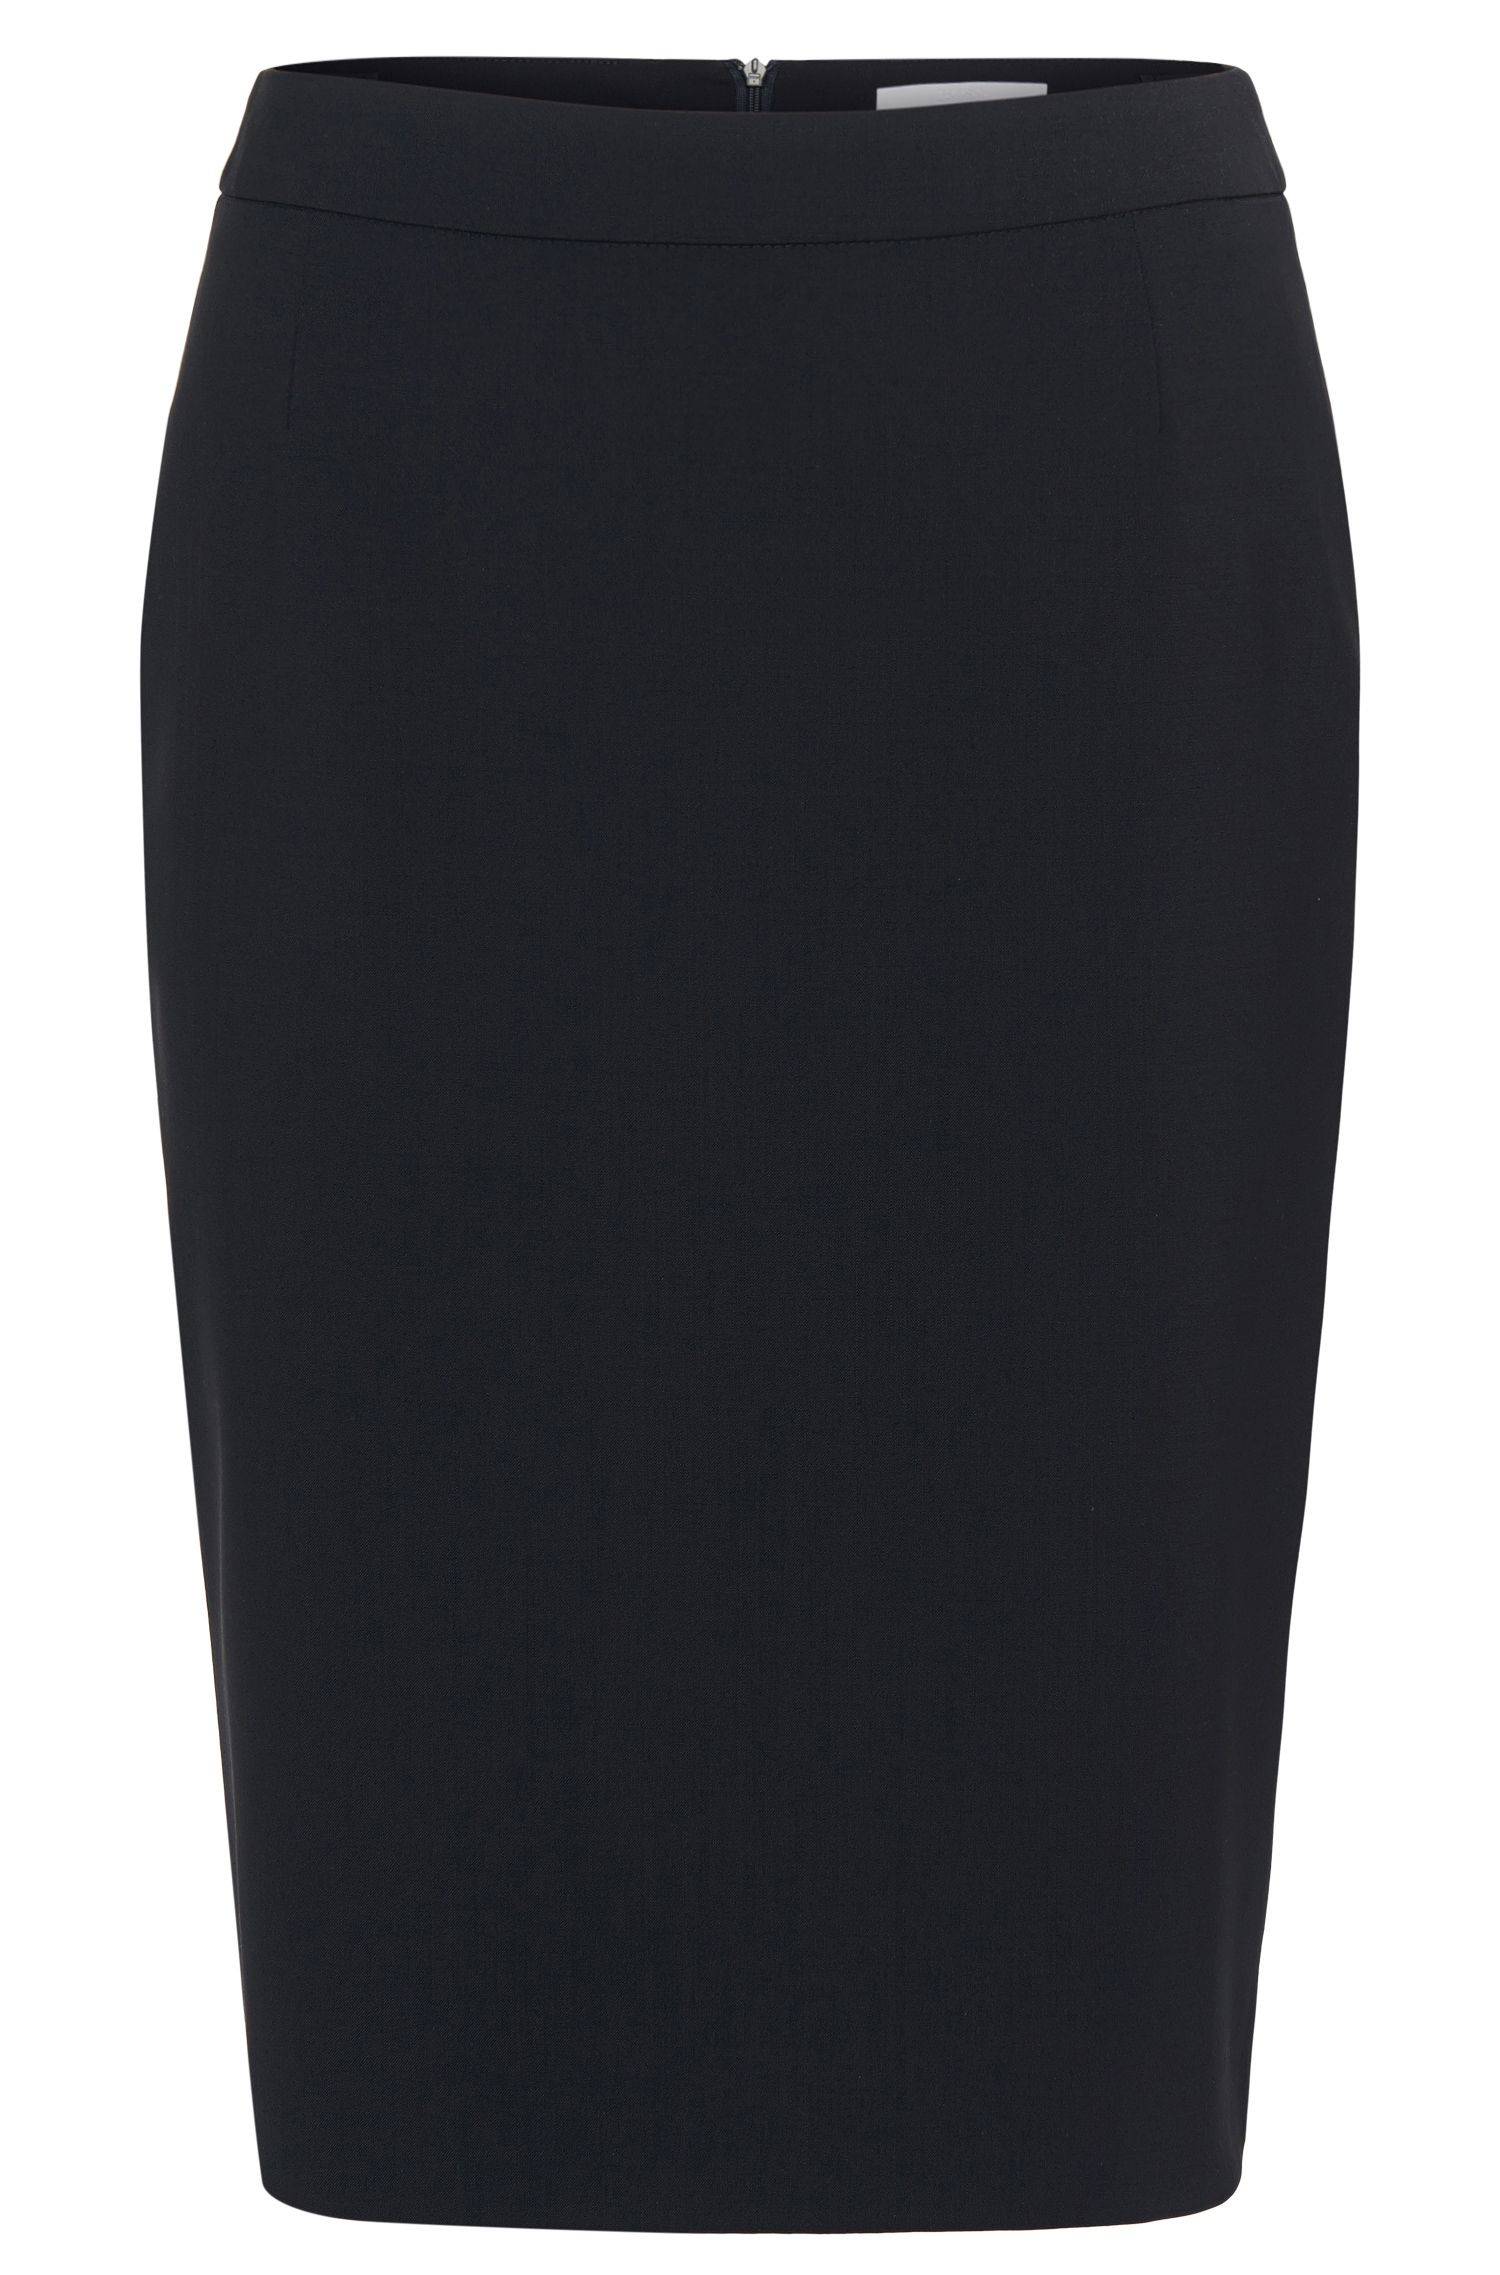 'Vilea' | Stretch Virgin Wool Pencil Skirt